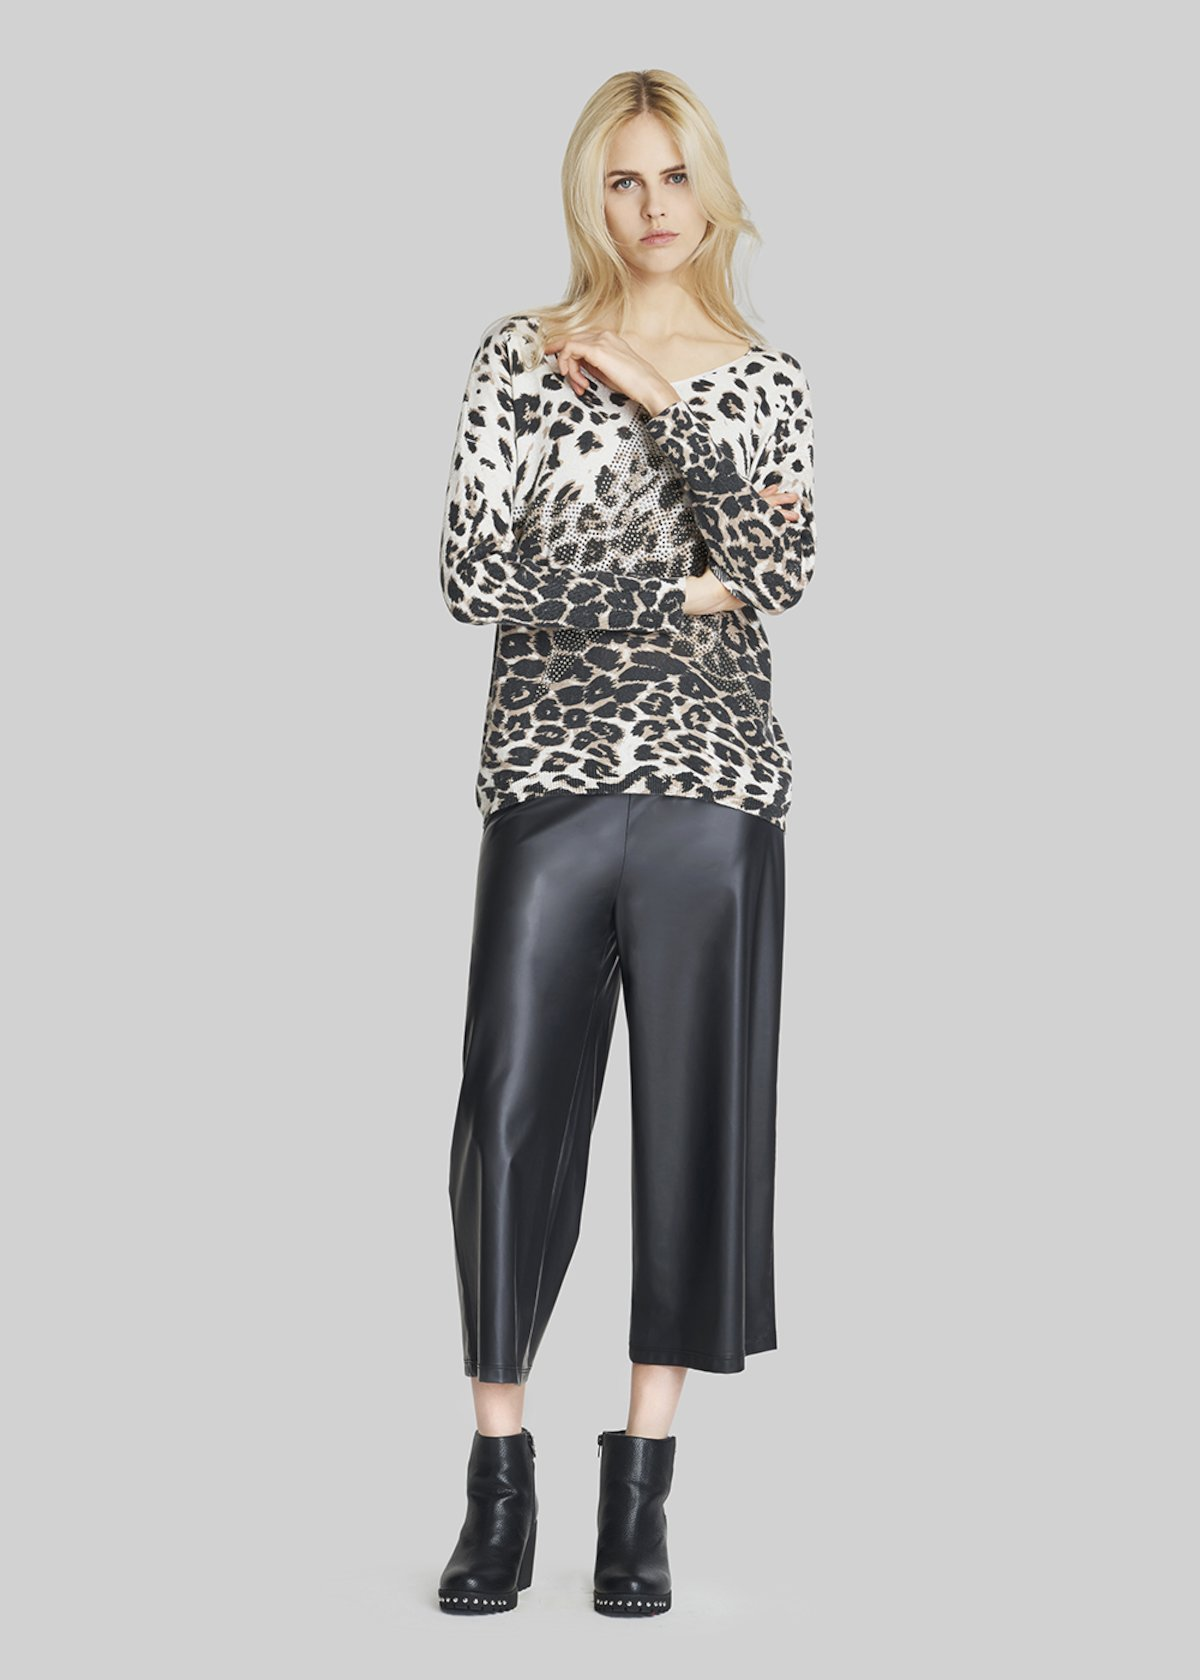 Pigo trousers with wide and short legs